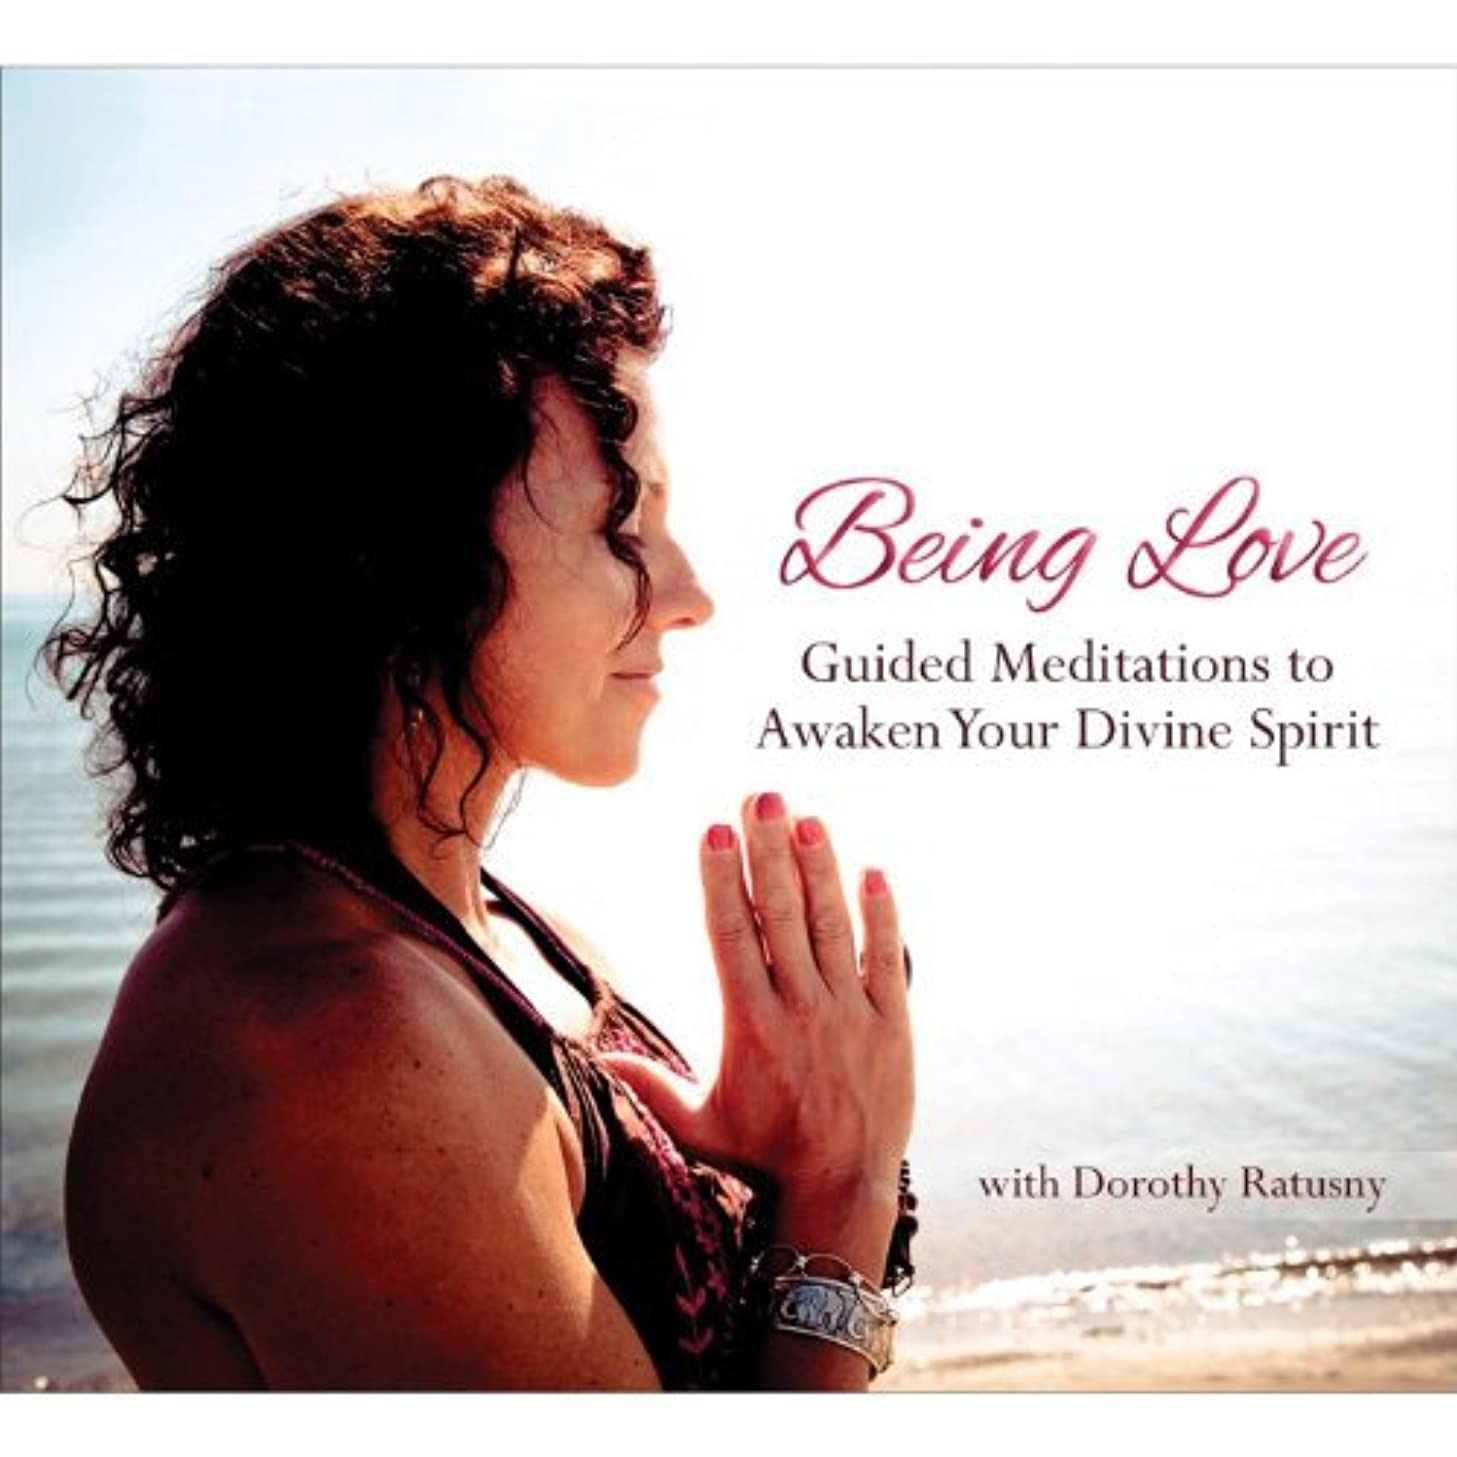 Being Love: Guided Meditations to Awaken Your Divi by Dorothy Ratusny